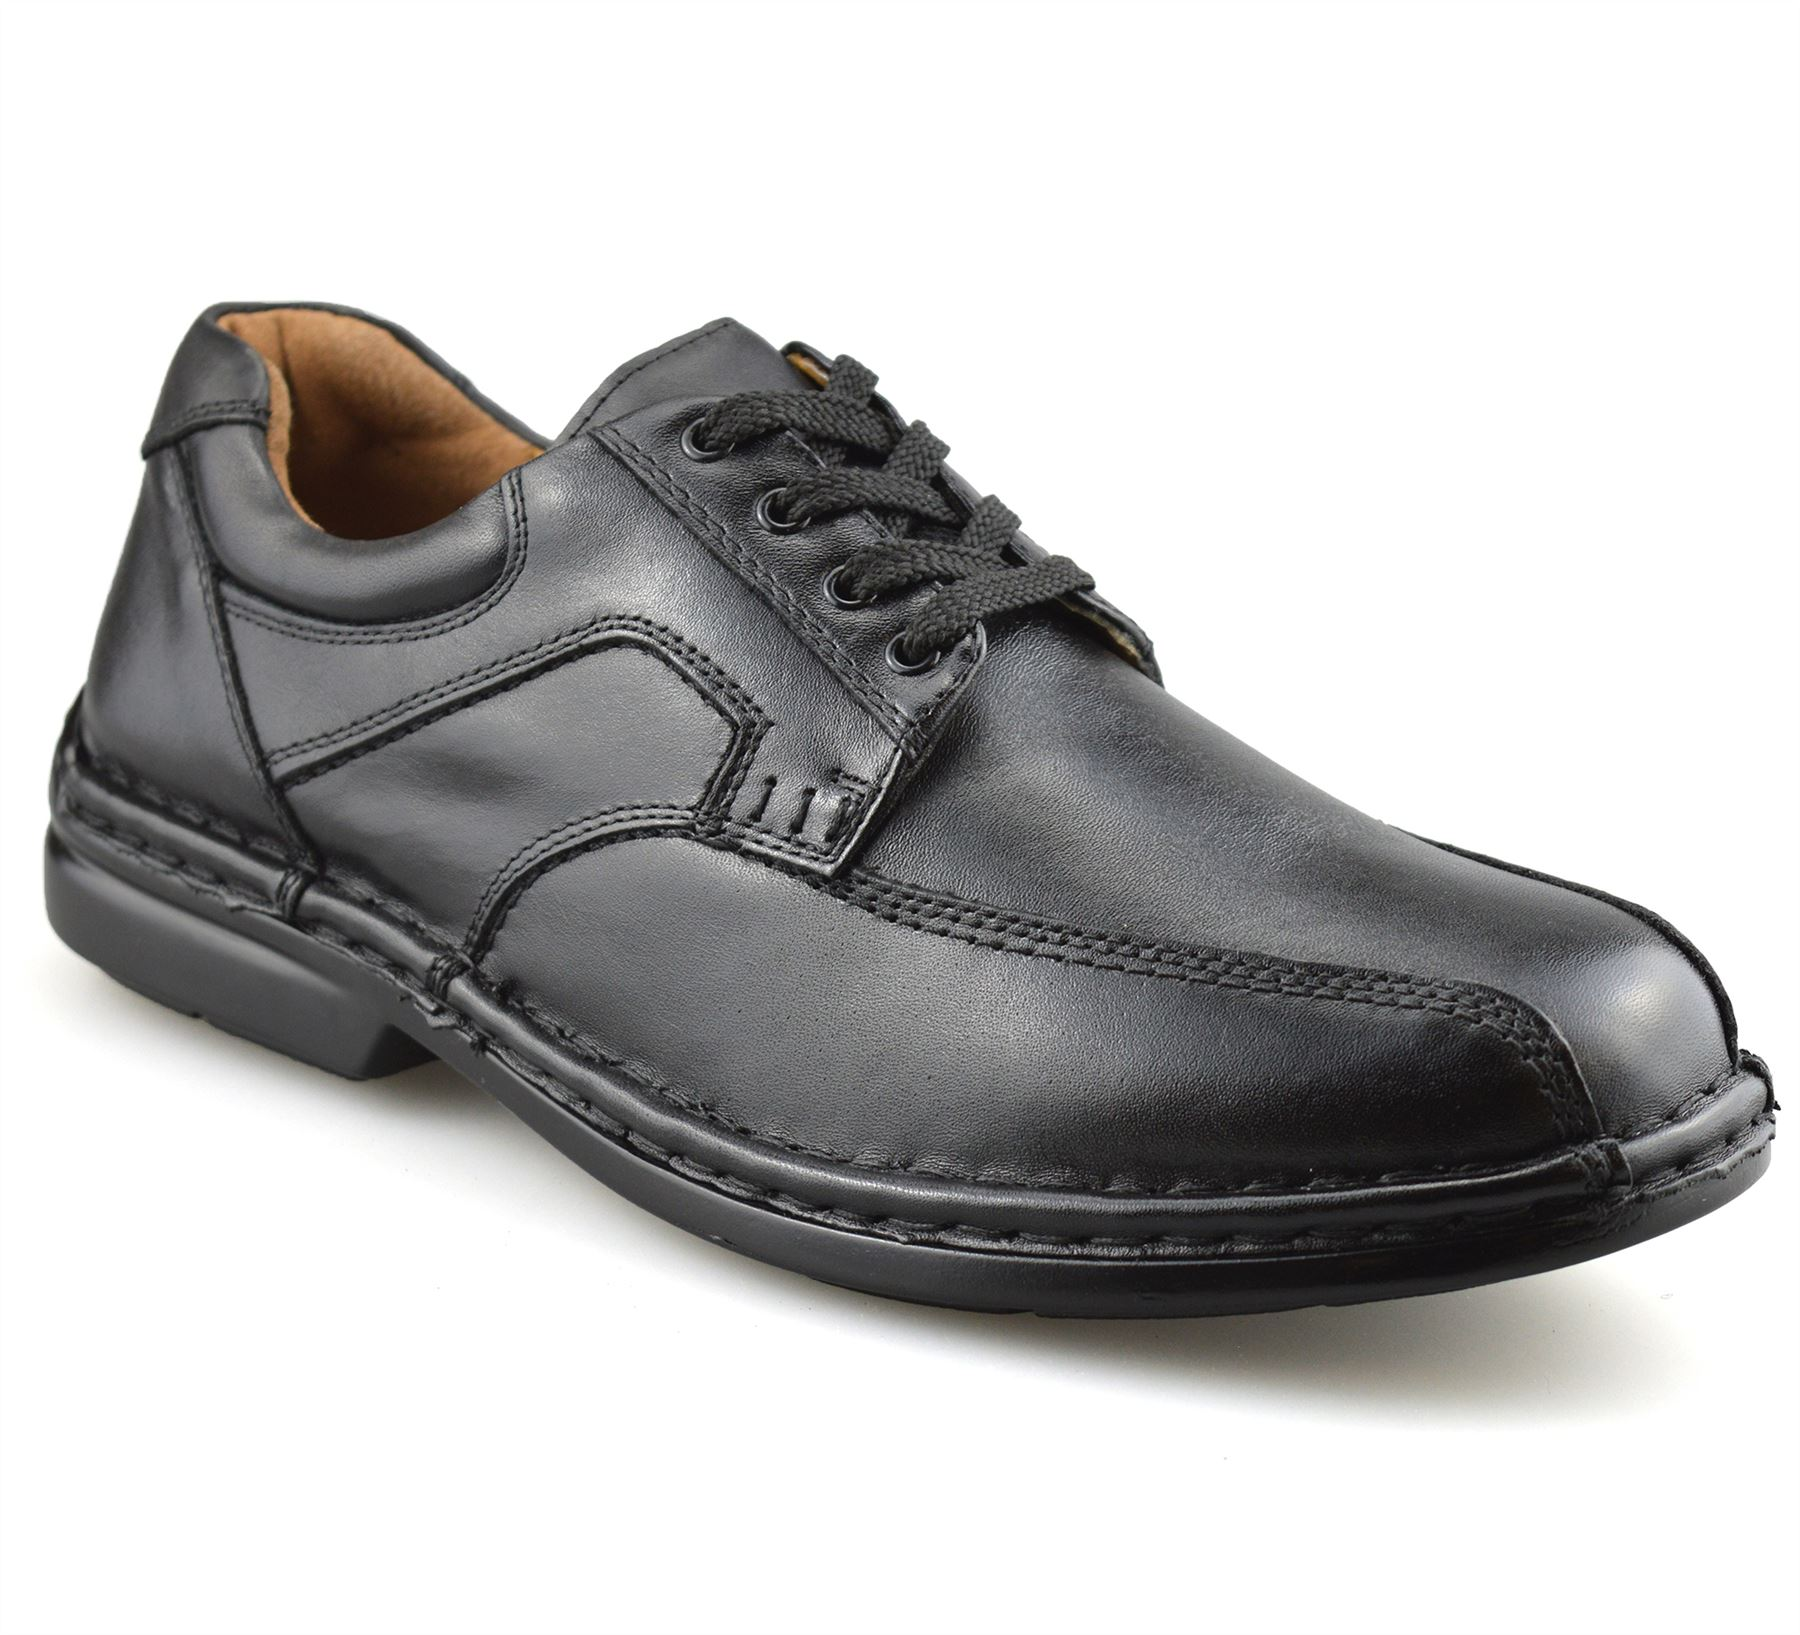 Mens-Hush-Puppies-Leather-Wide-Fit-Smart-Casual-Lace-Up-Work-Office-Shoes-Size thumbnail 9